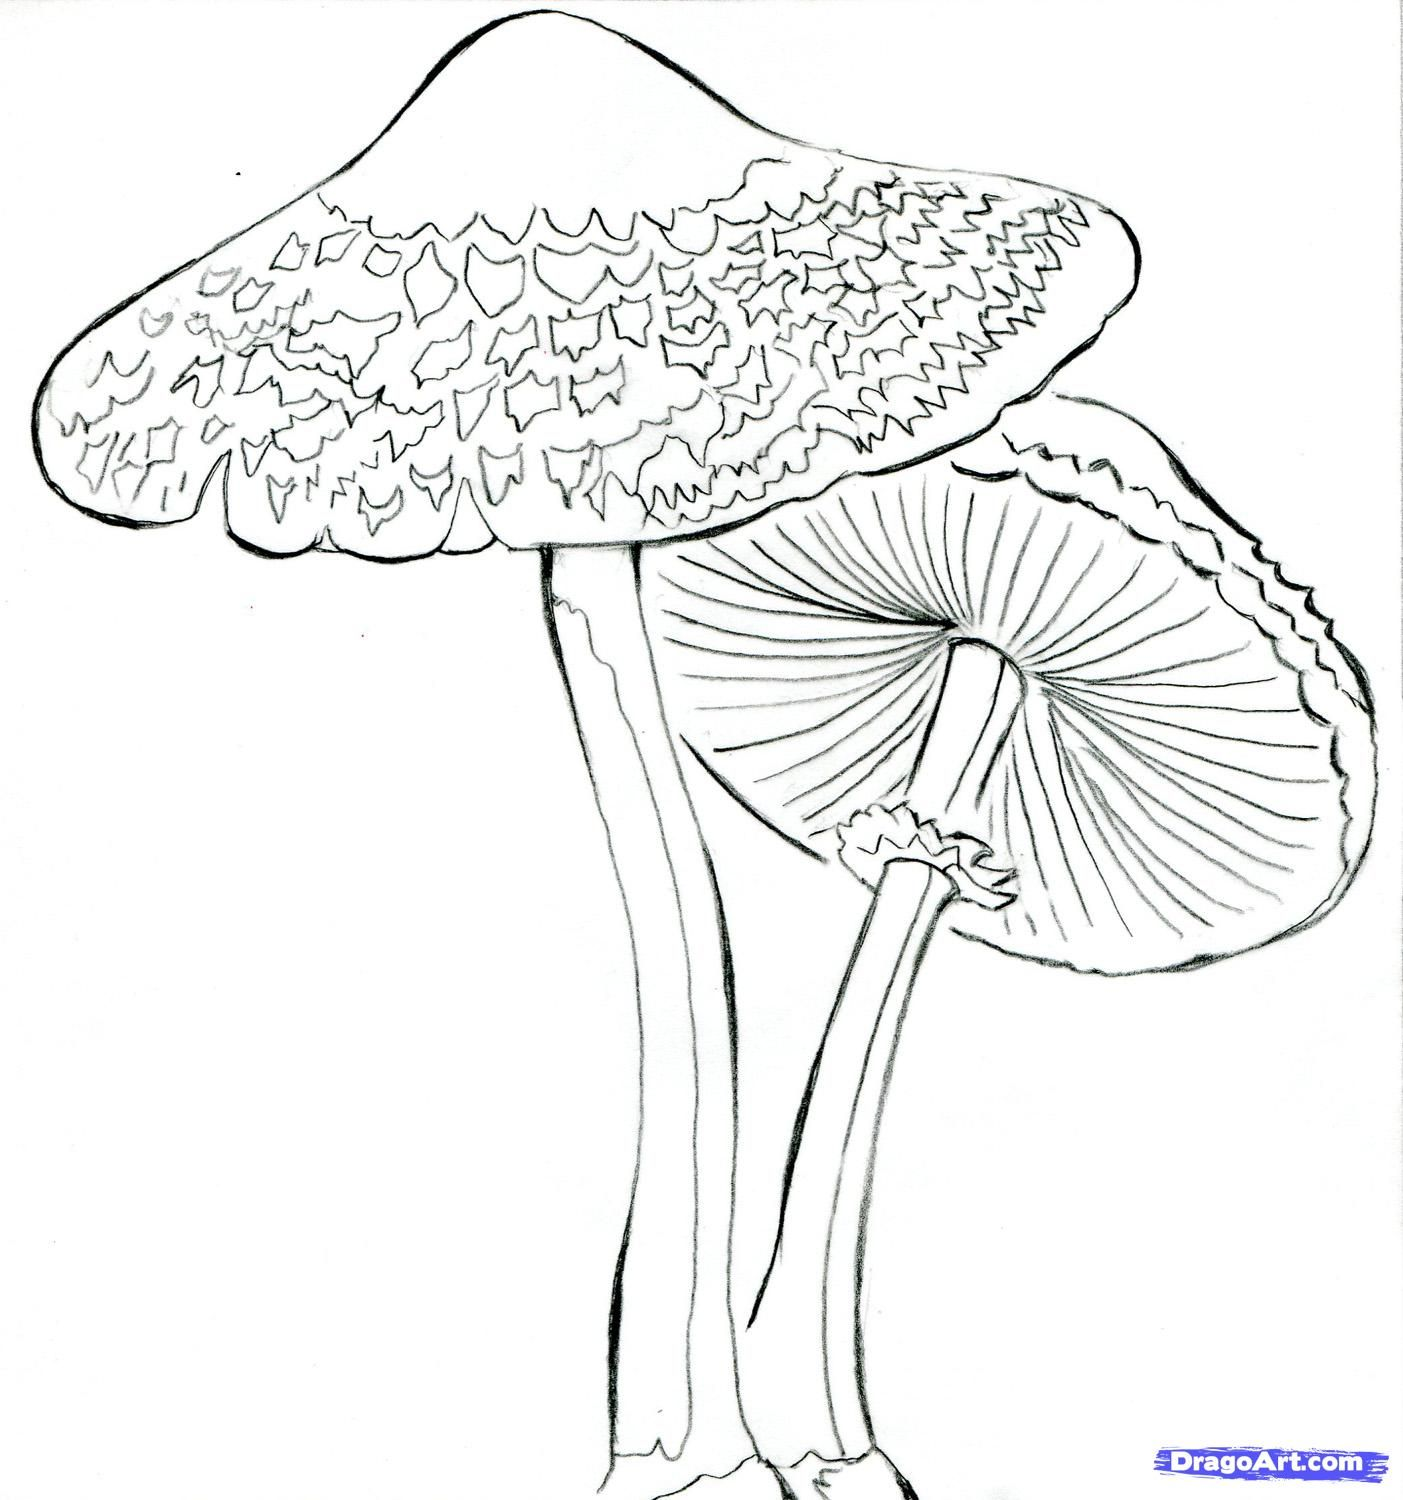 psychedelic mushroom coloring pages - Pesquisa Google | Stained ...